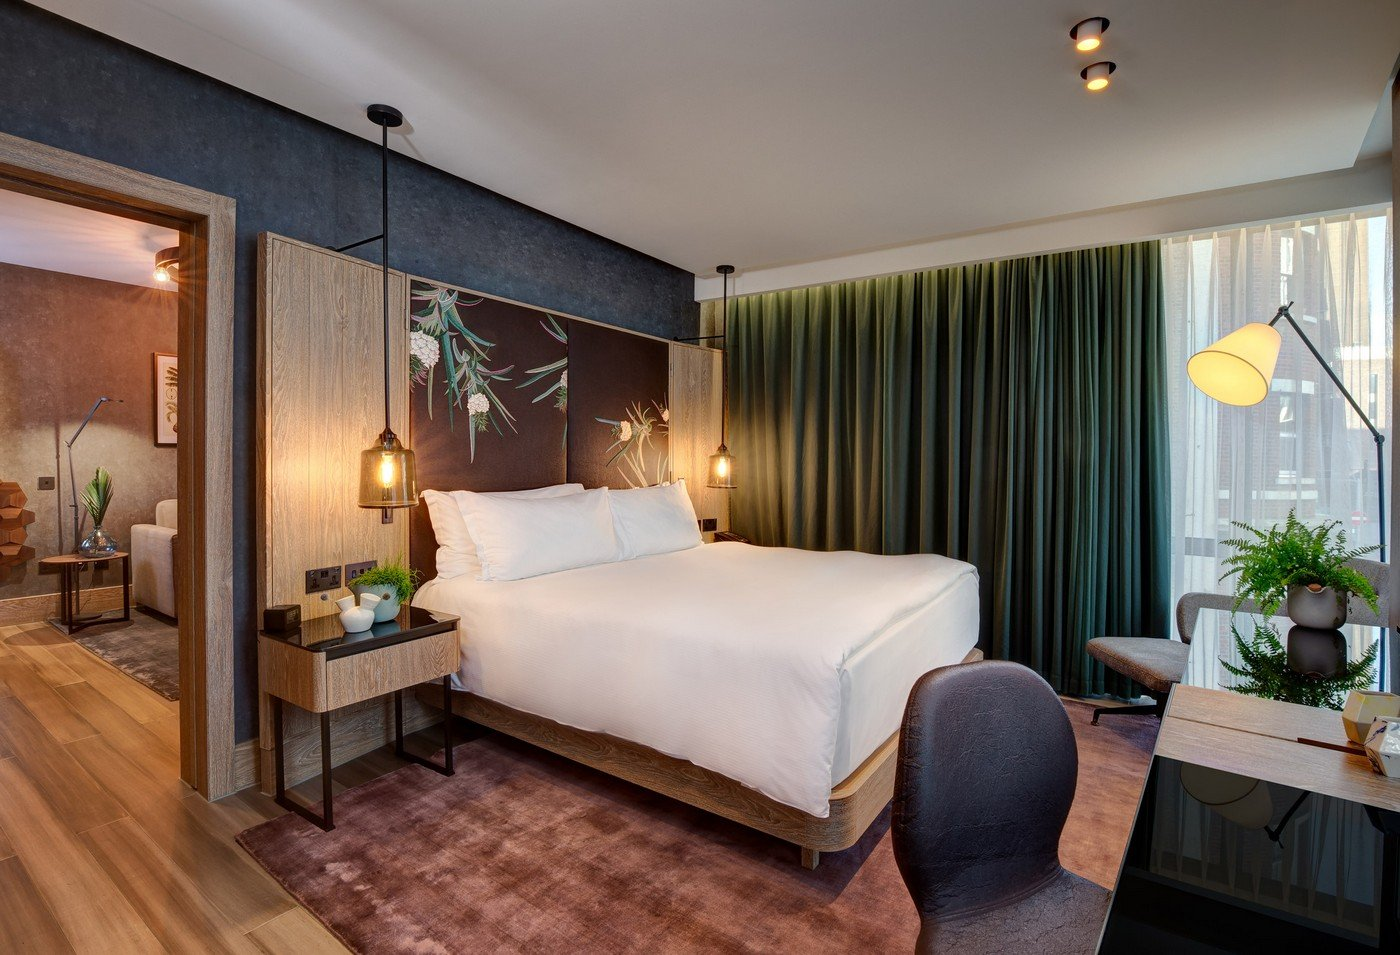 The Worlds First Vegan Hotel Suite Is Now Available For Booking At The Hilton London